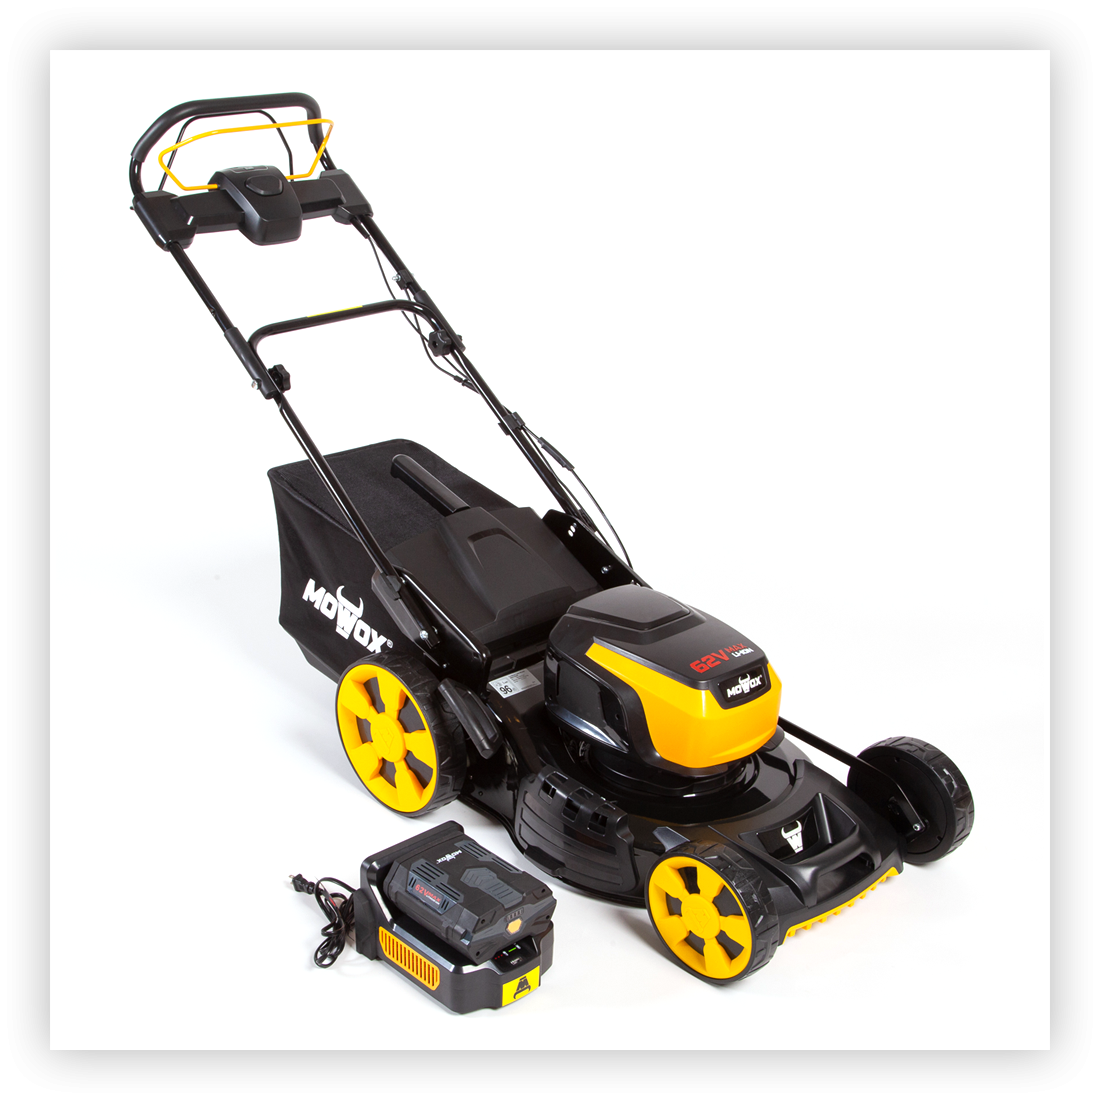 62 Volt Self-Propelled Battery-Powered Mower